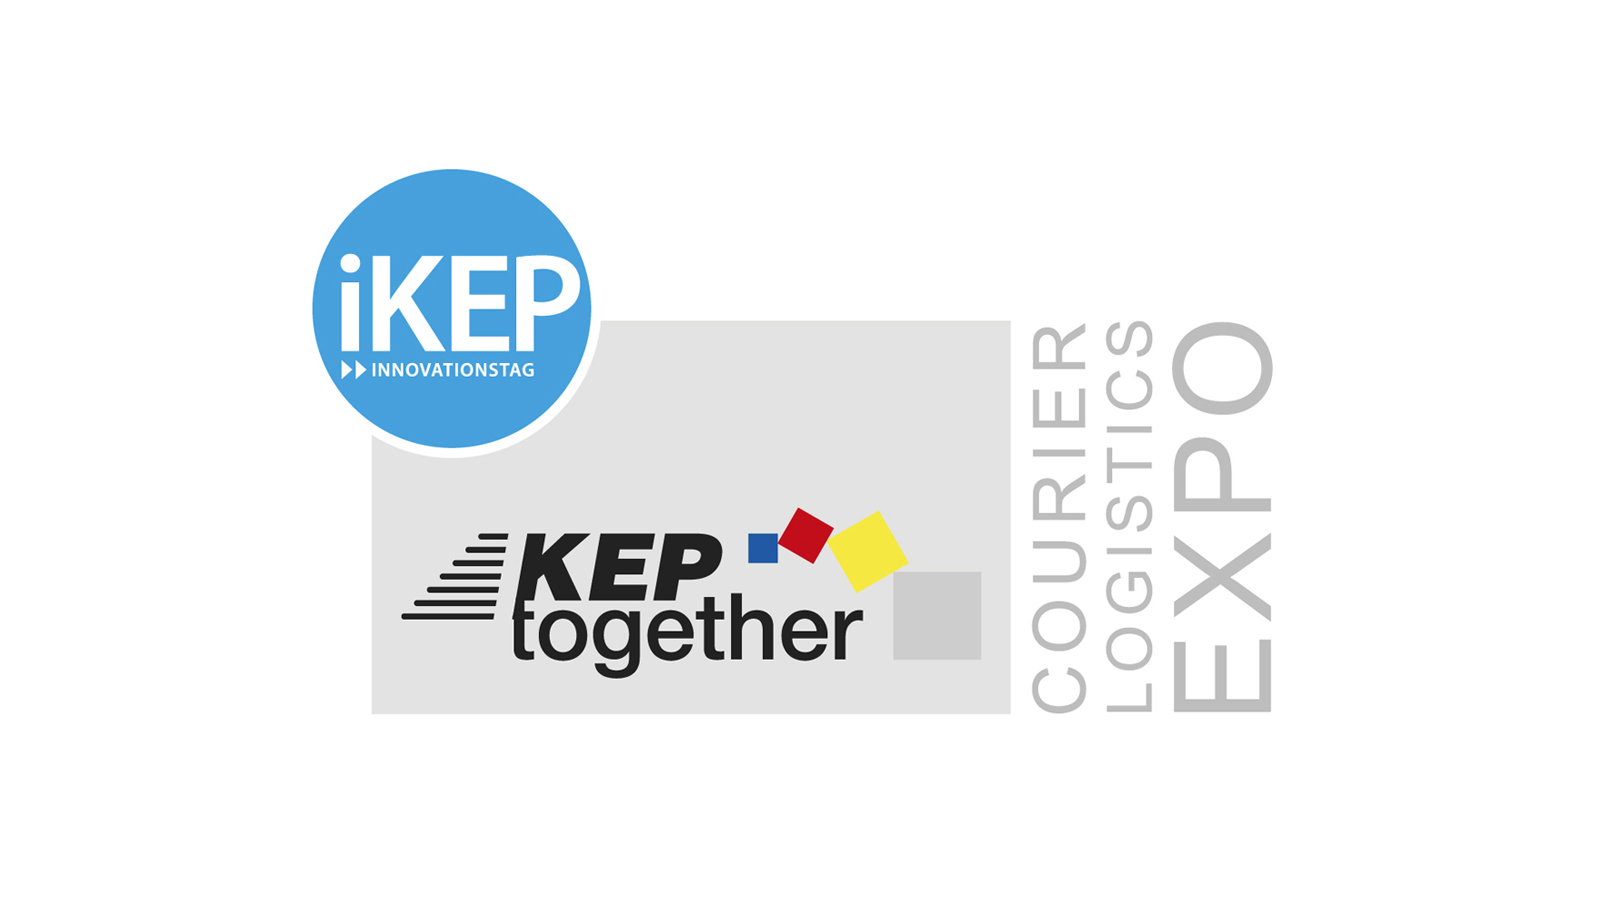 iKEP | KEP-together 2019